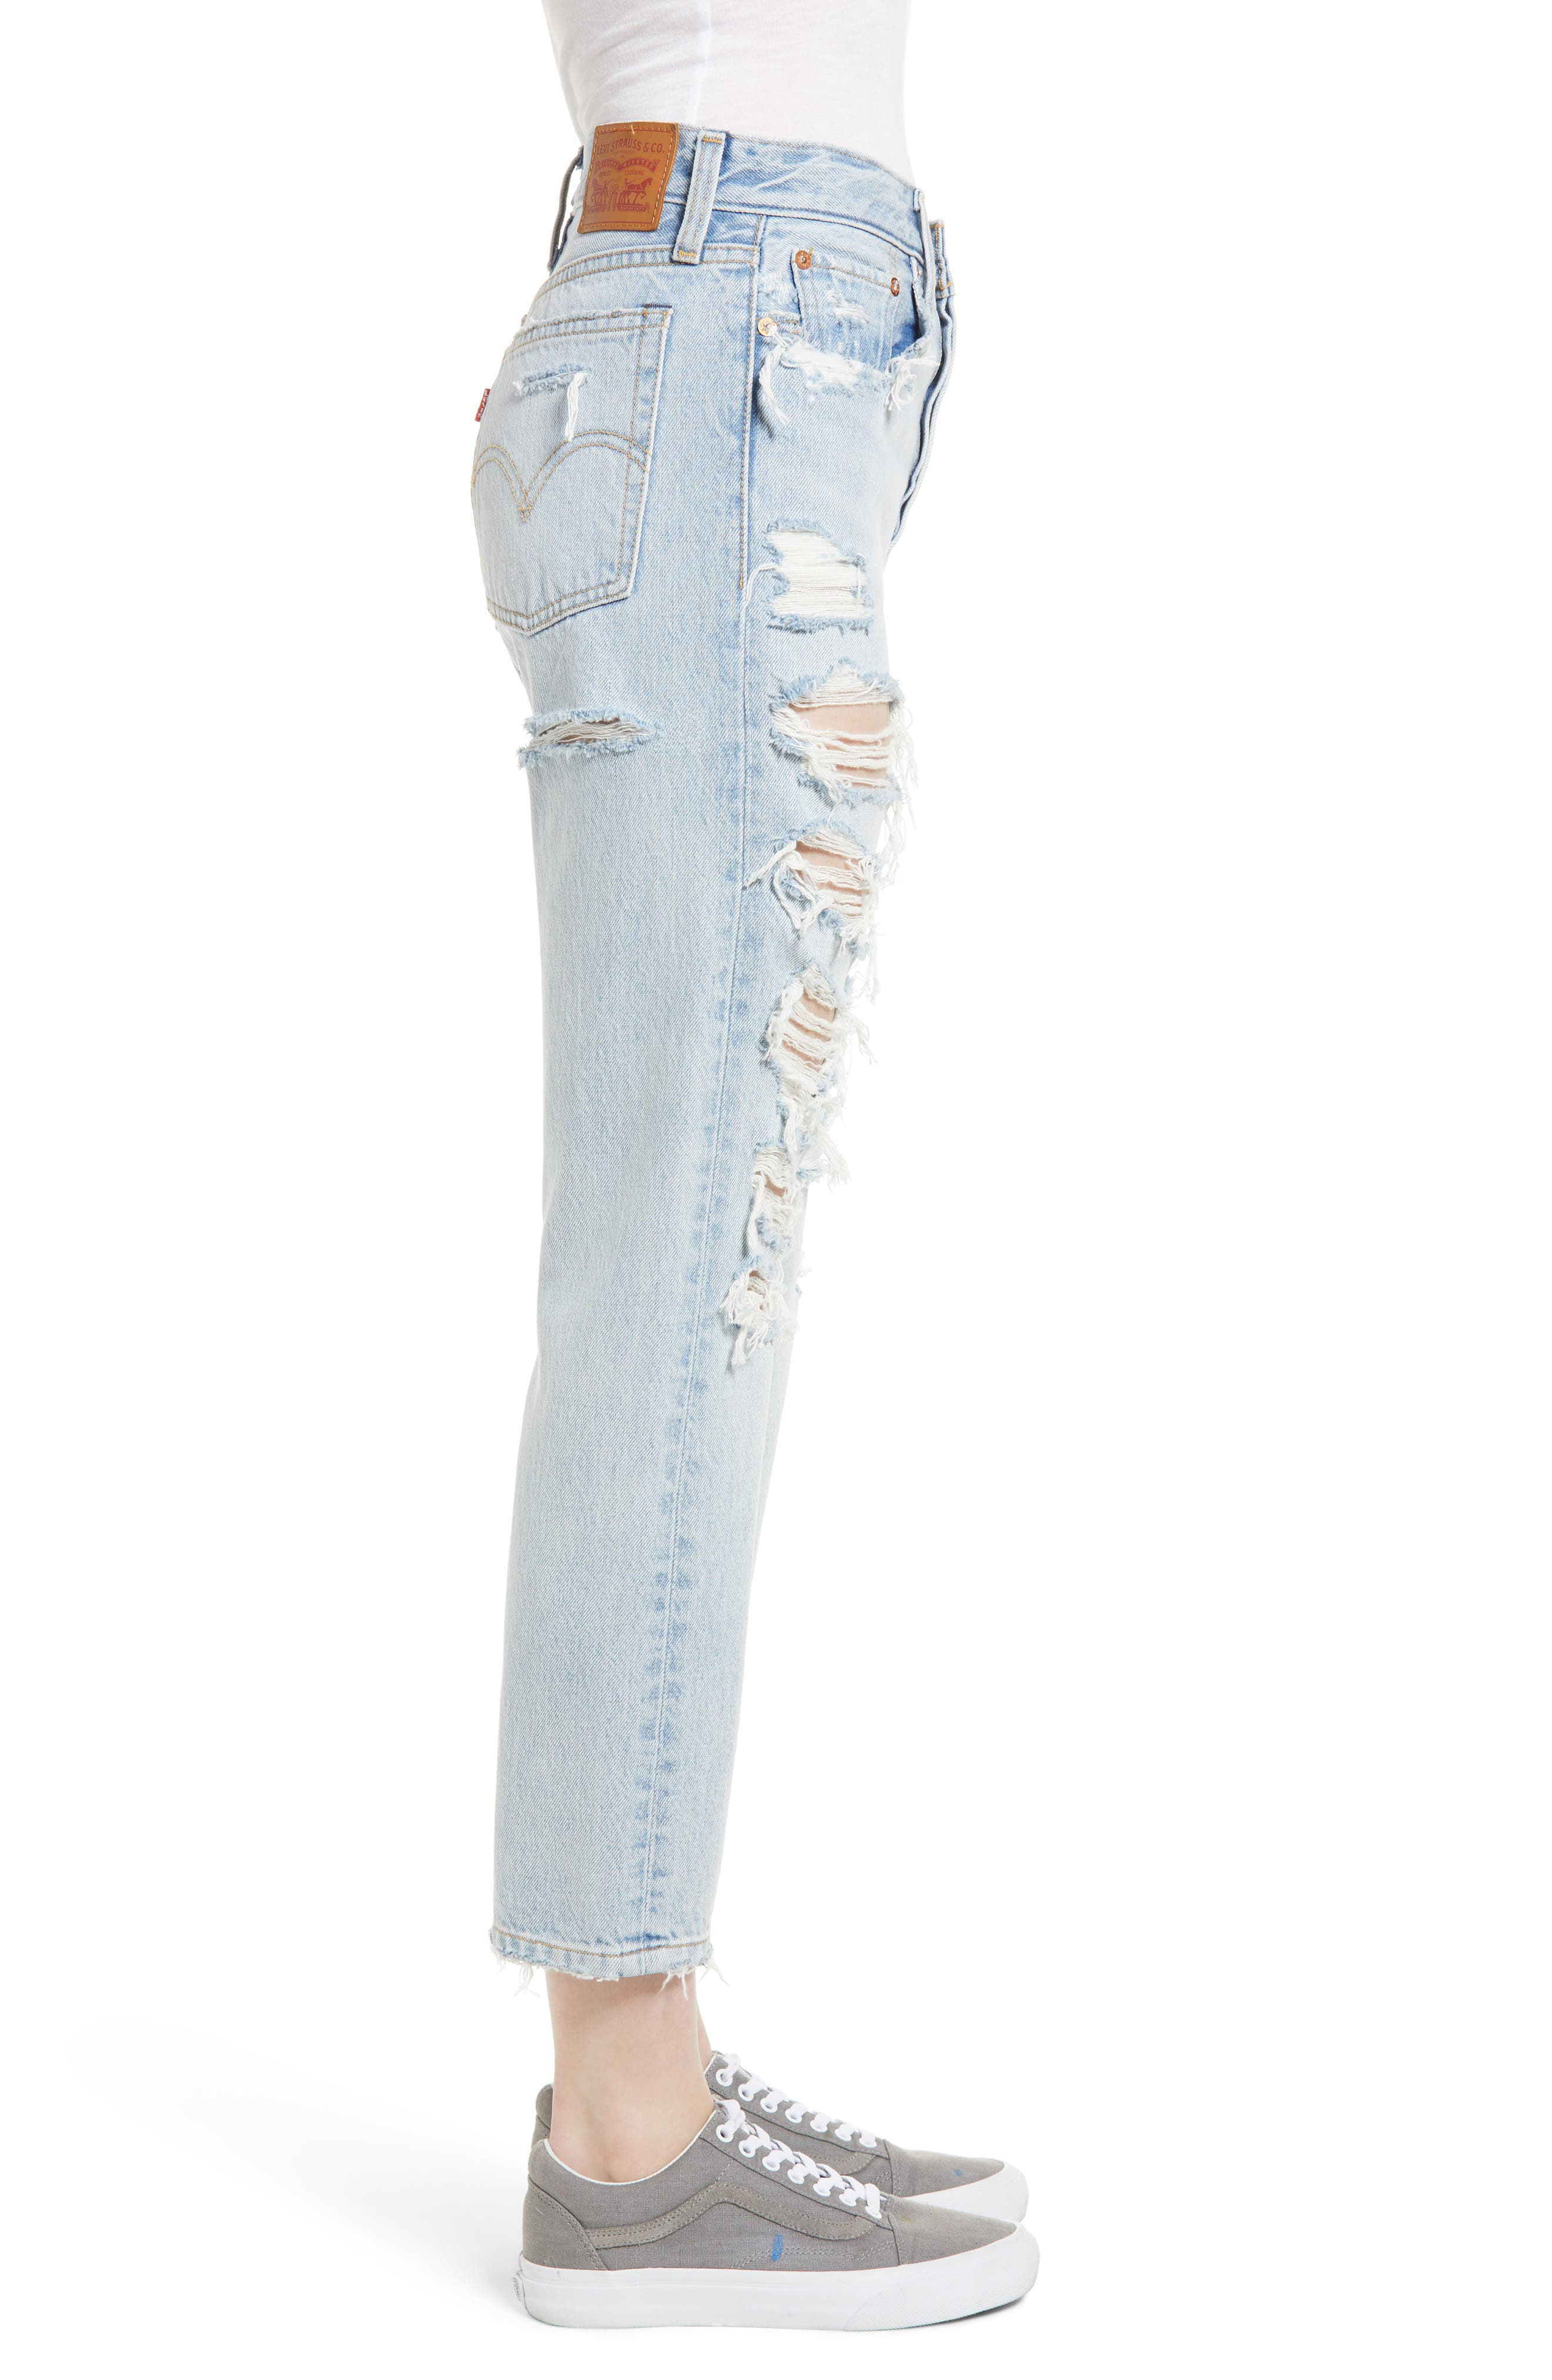 Wedgie High Waist Ripped Straight Jeans,                             Alternate thumbnail 3, color,                             Light Blue 1